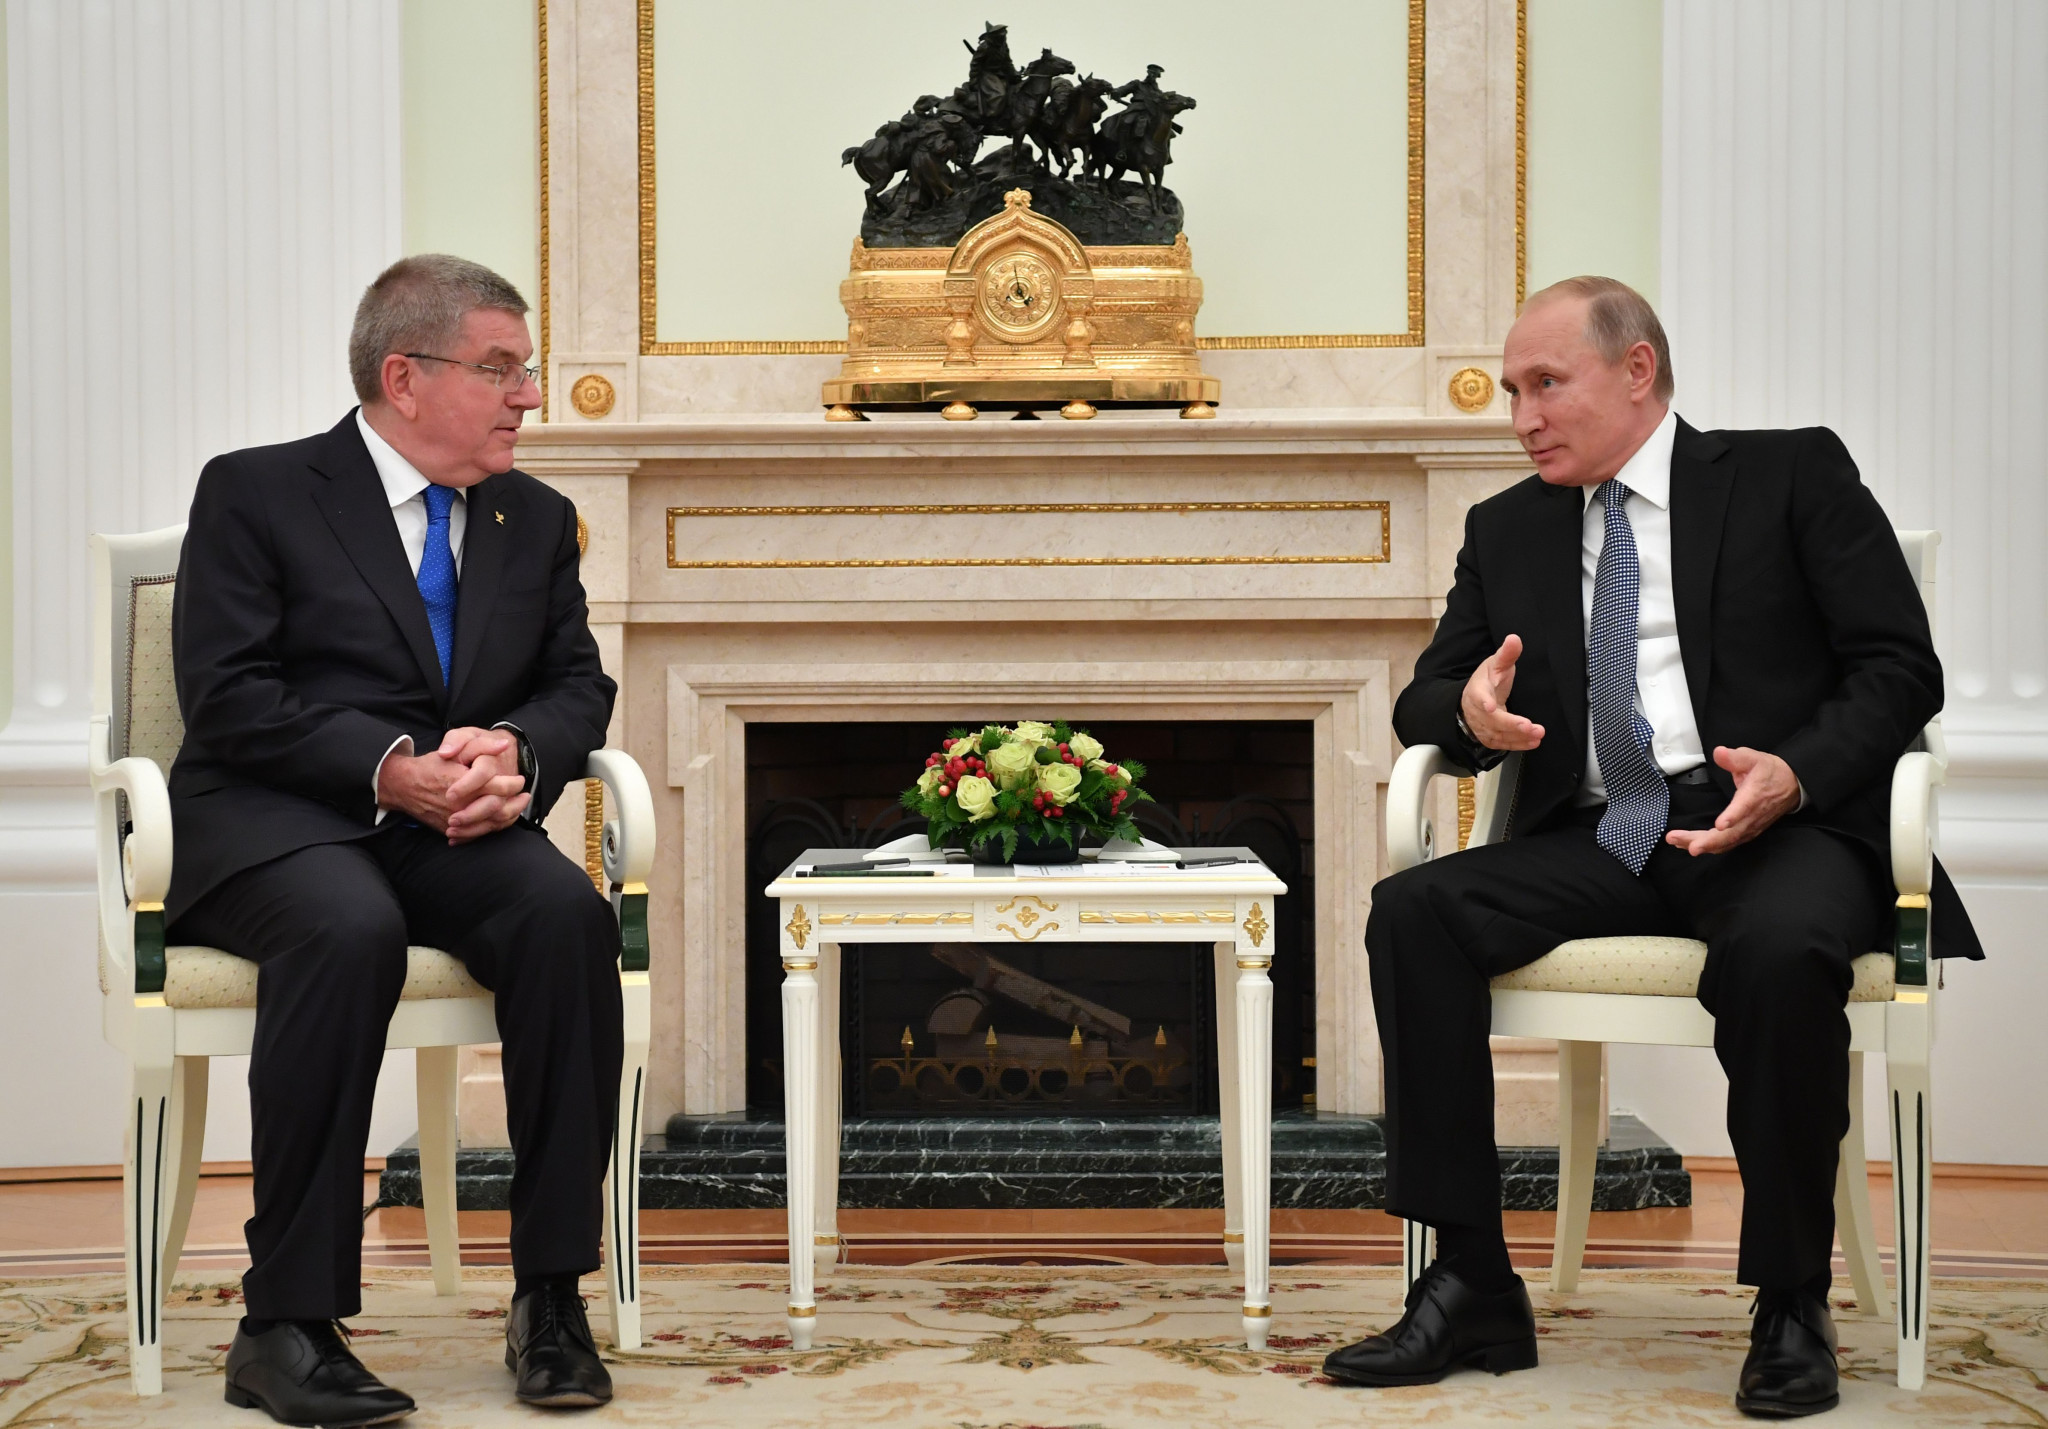 IOC President Thomas Bach last met with Russia's Vladimir Putin during the 2018 FIFA World Cup ©Getty Images